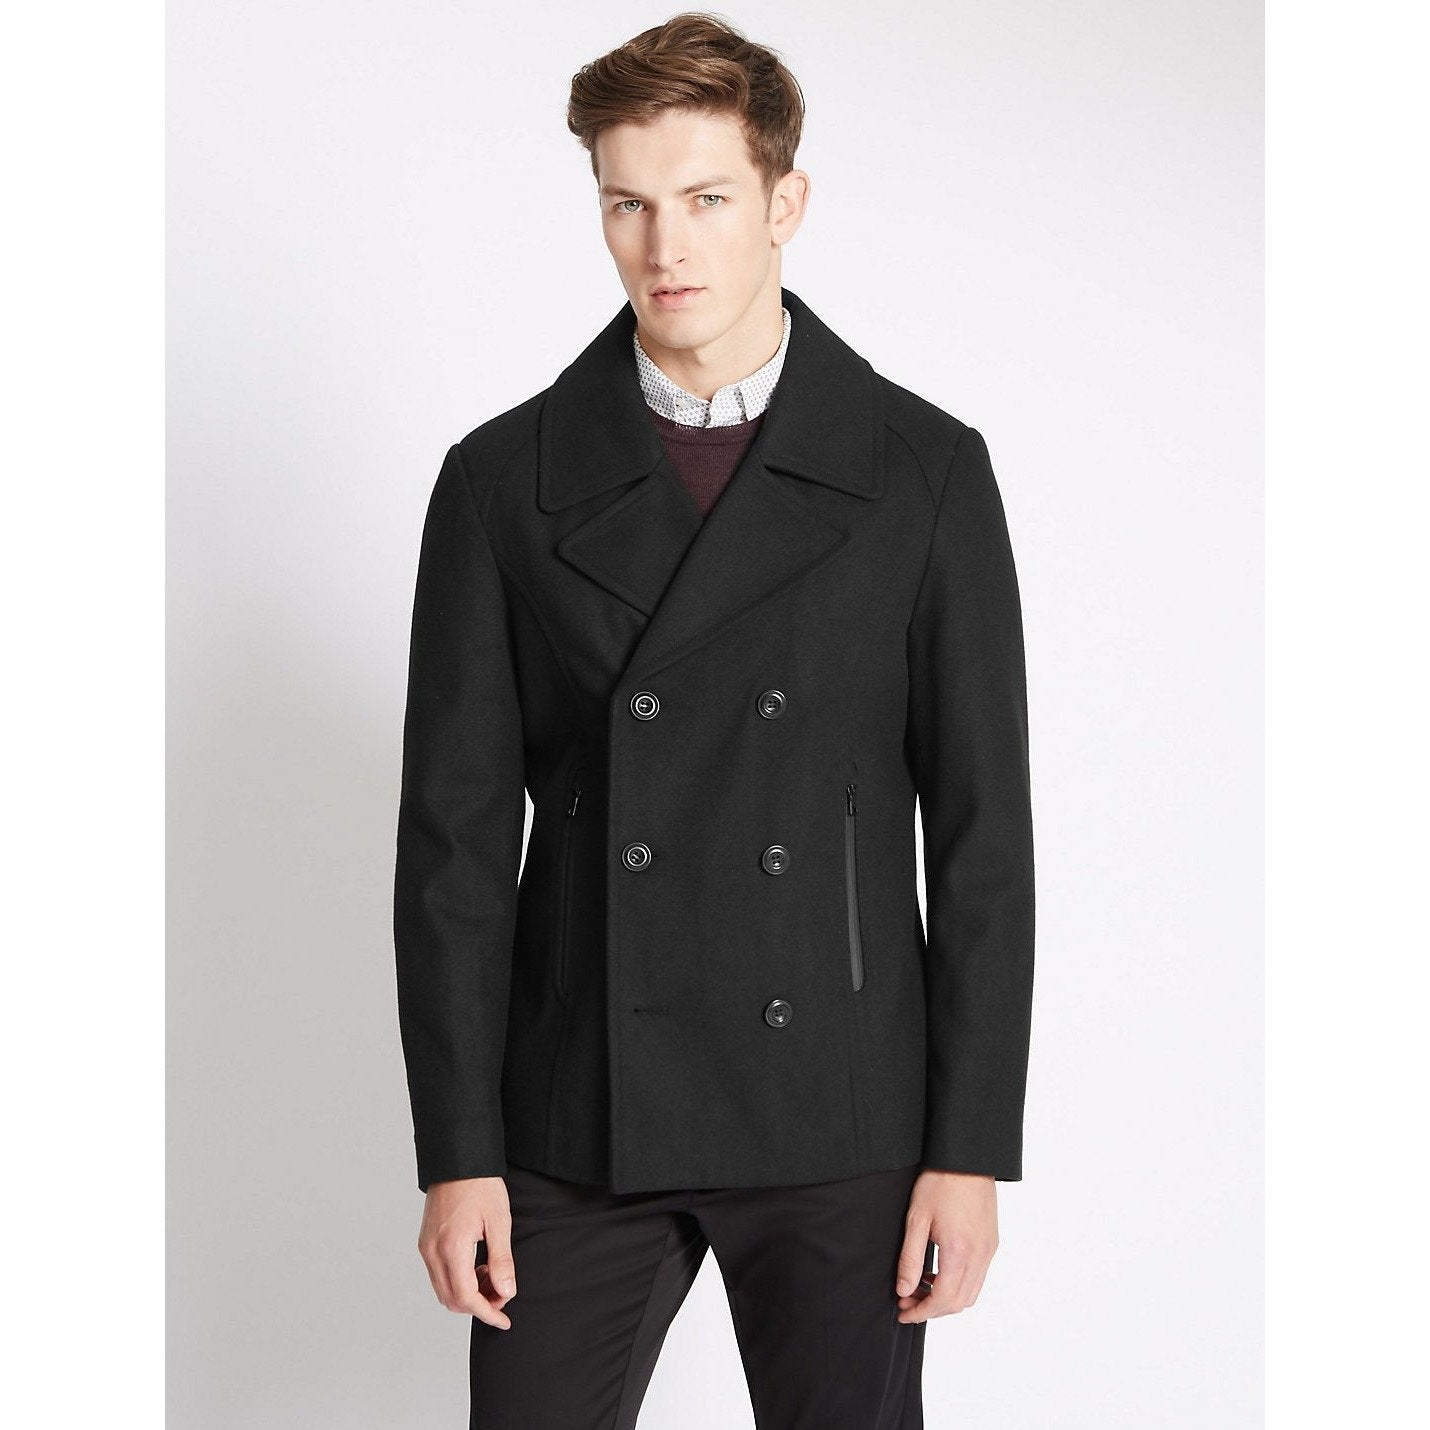 ecdcebf5c8085 Hover to zoom · MARKS & SPENCER - Double Breasted Peacoat (limited edition)  - Top Notch, ...